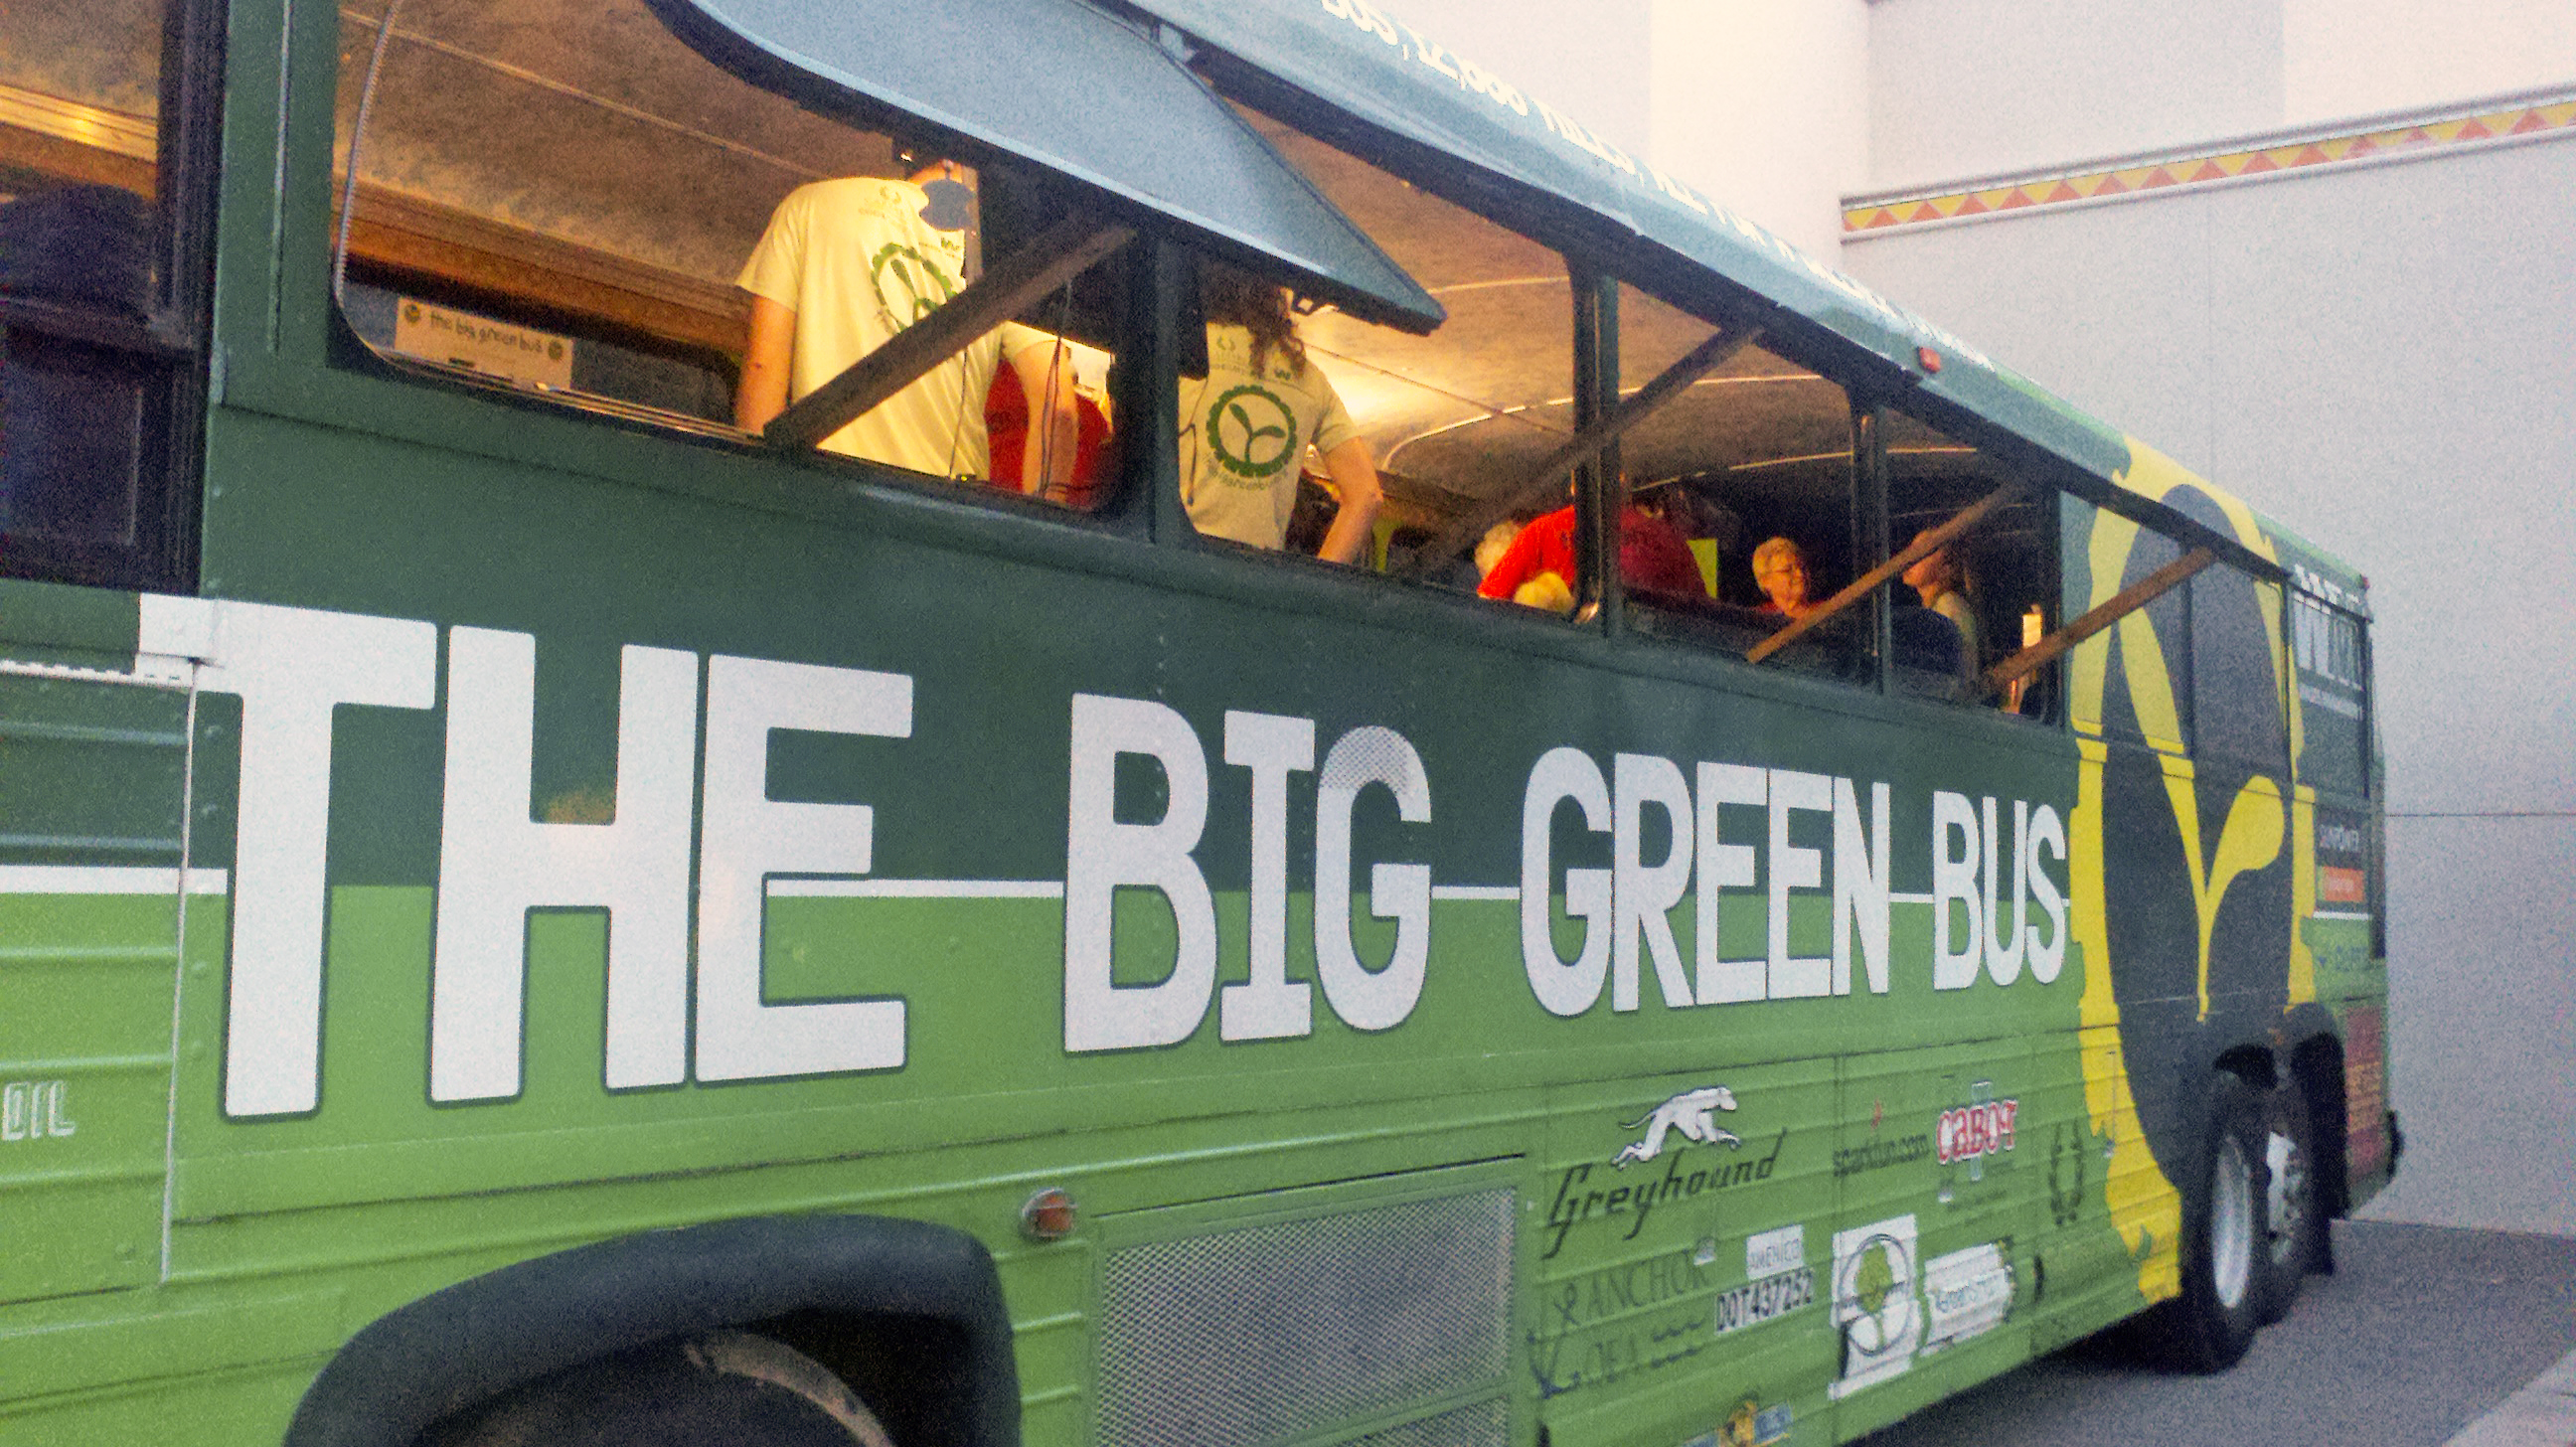 Big Green Bus at Harrah's Ak-Chin Casino Resort in Maricopa, Ariz.